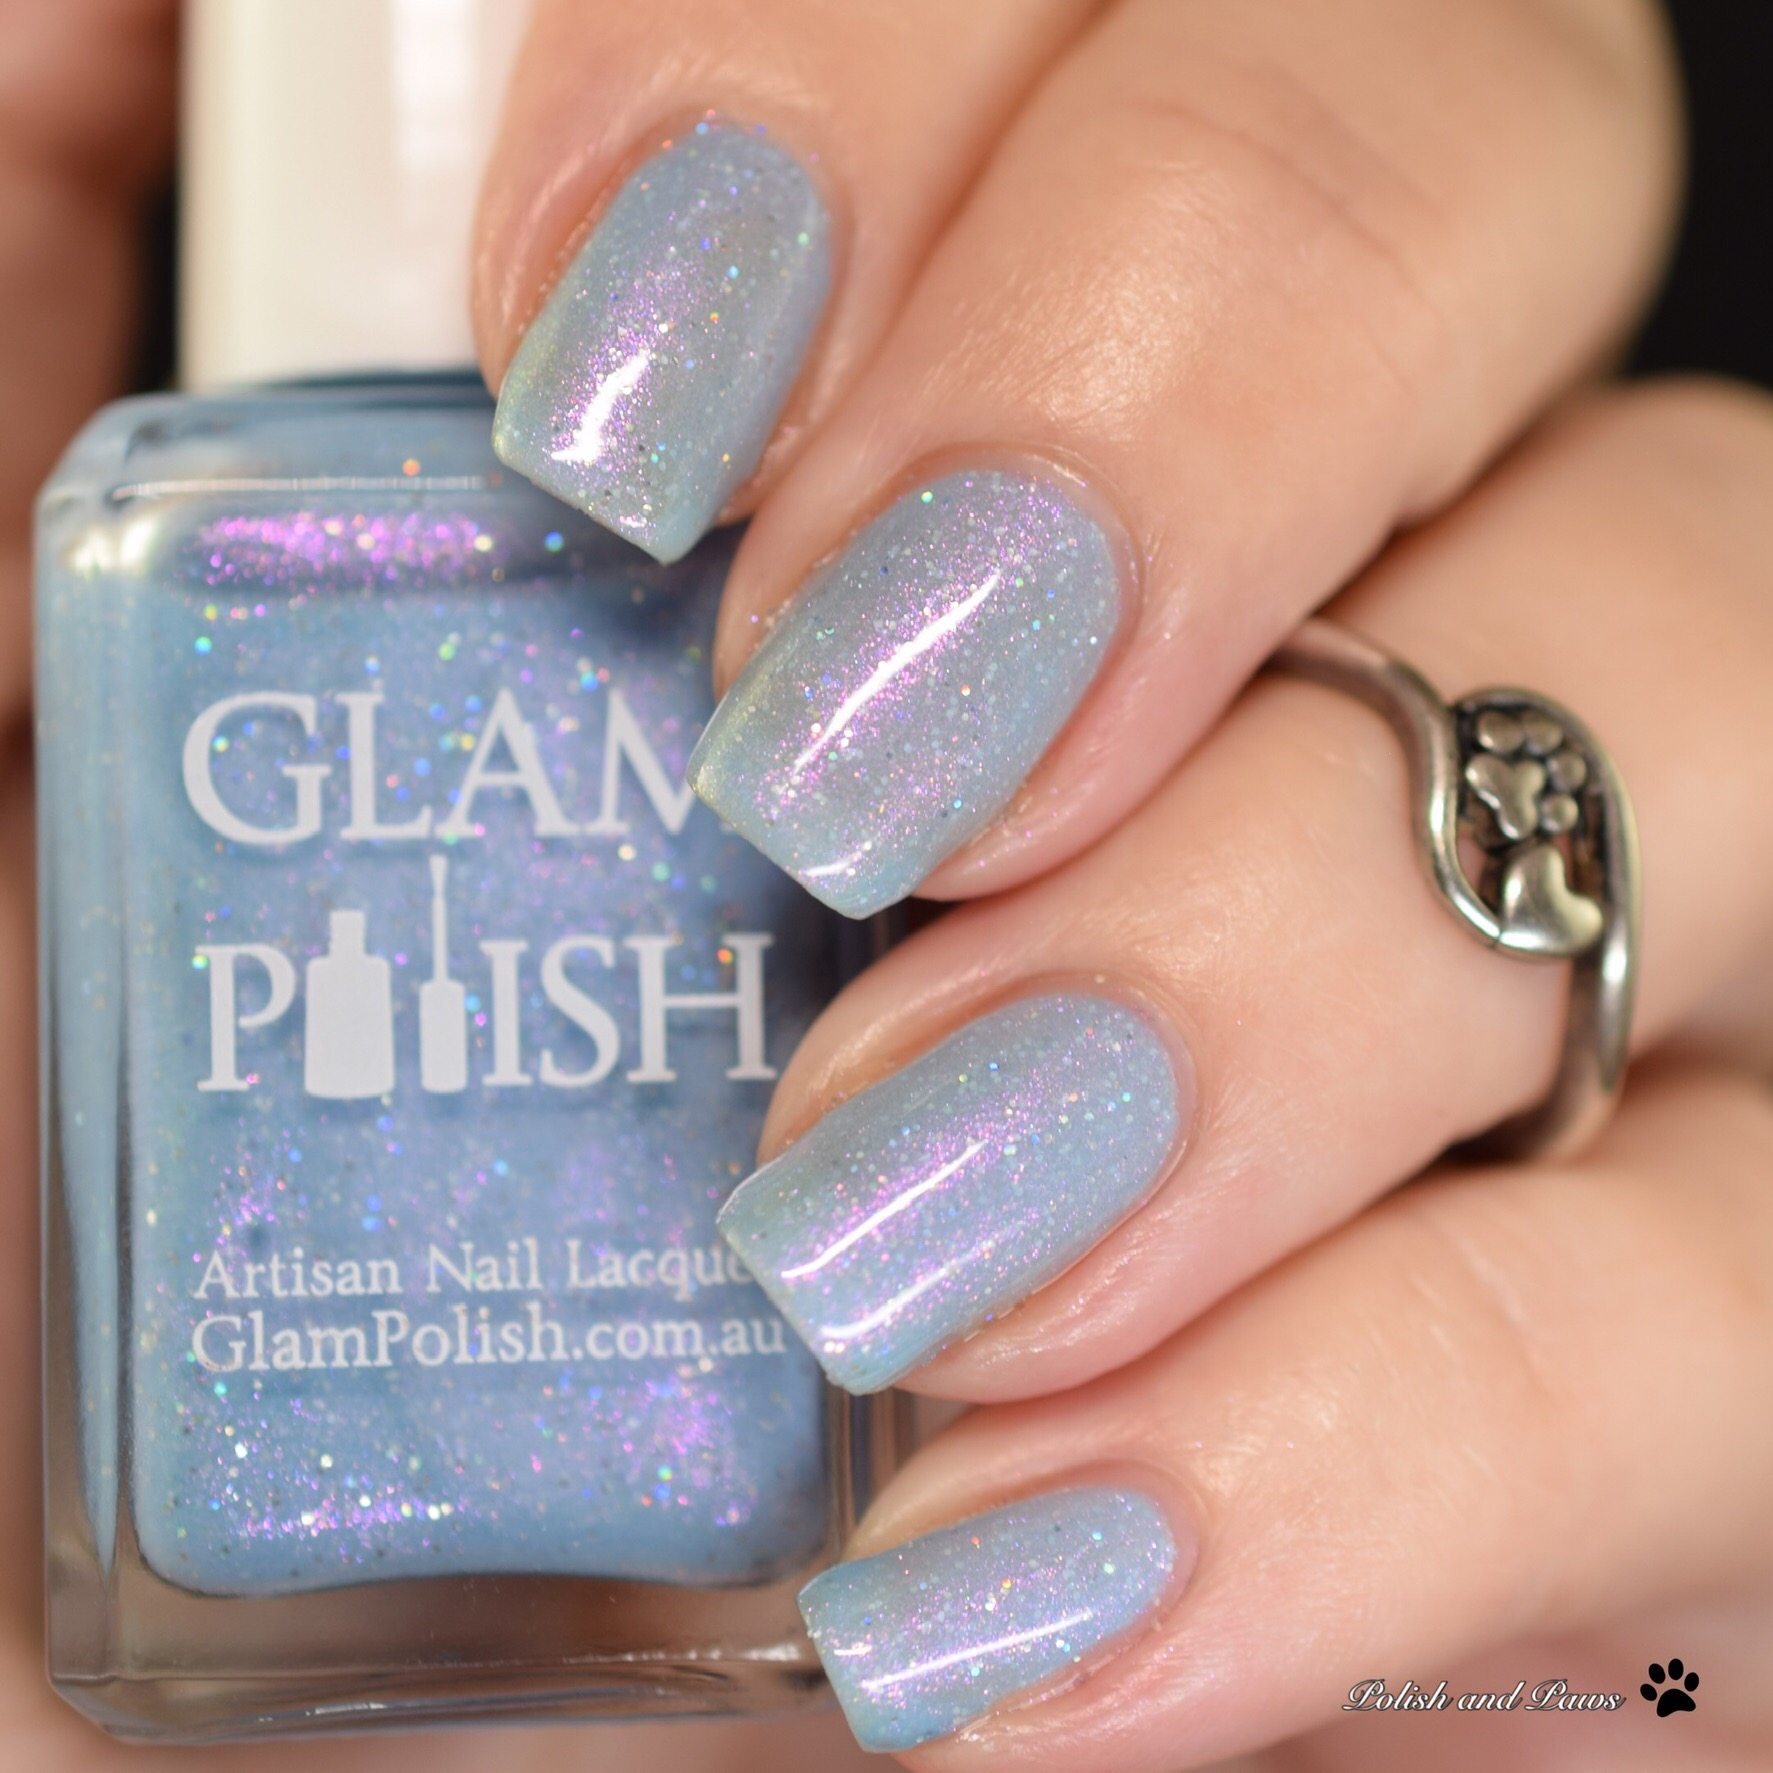 Glam Polish Starbright